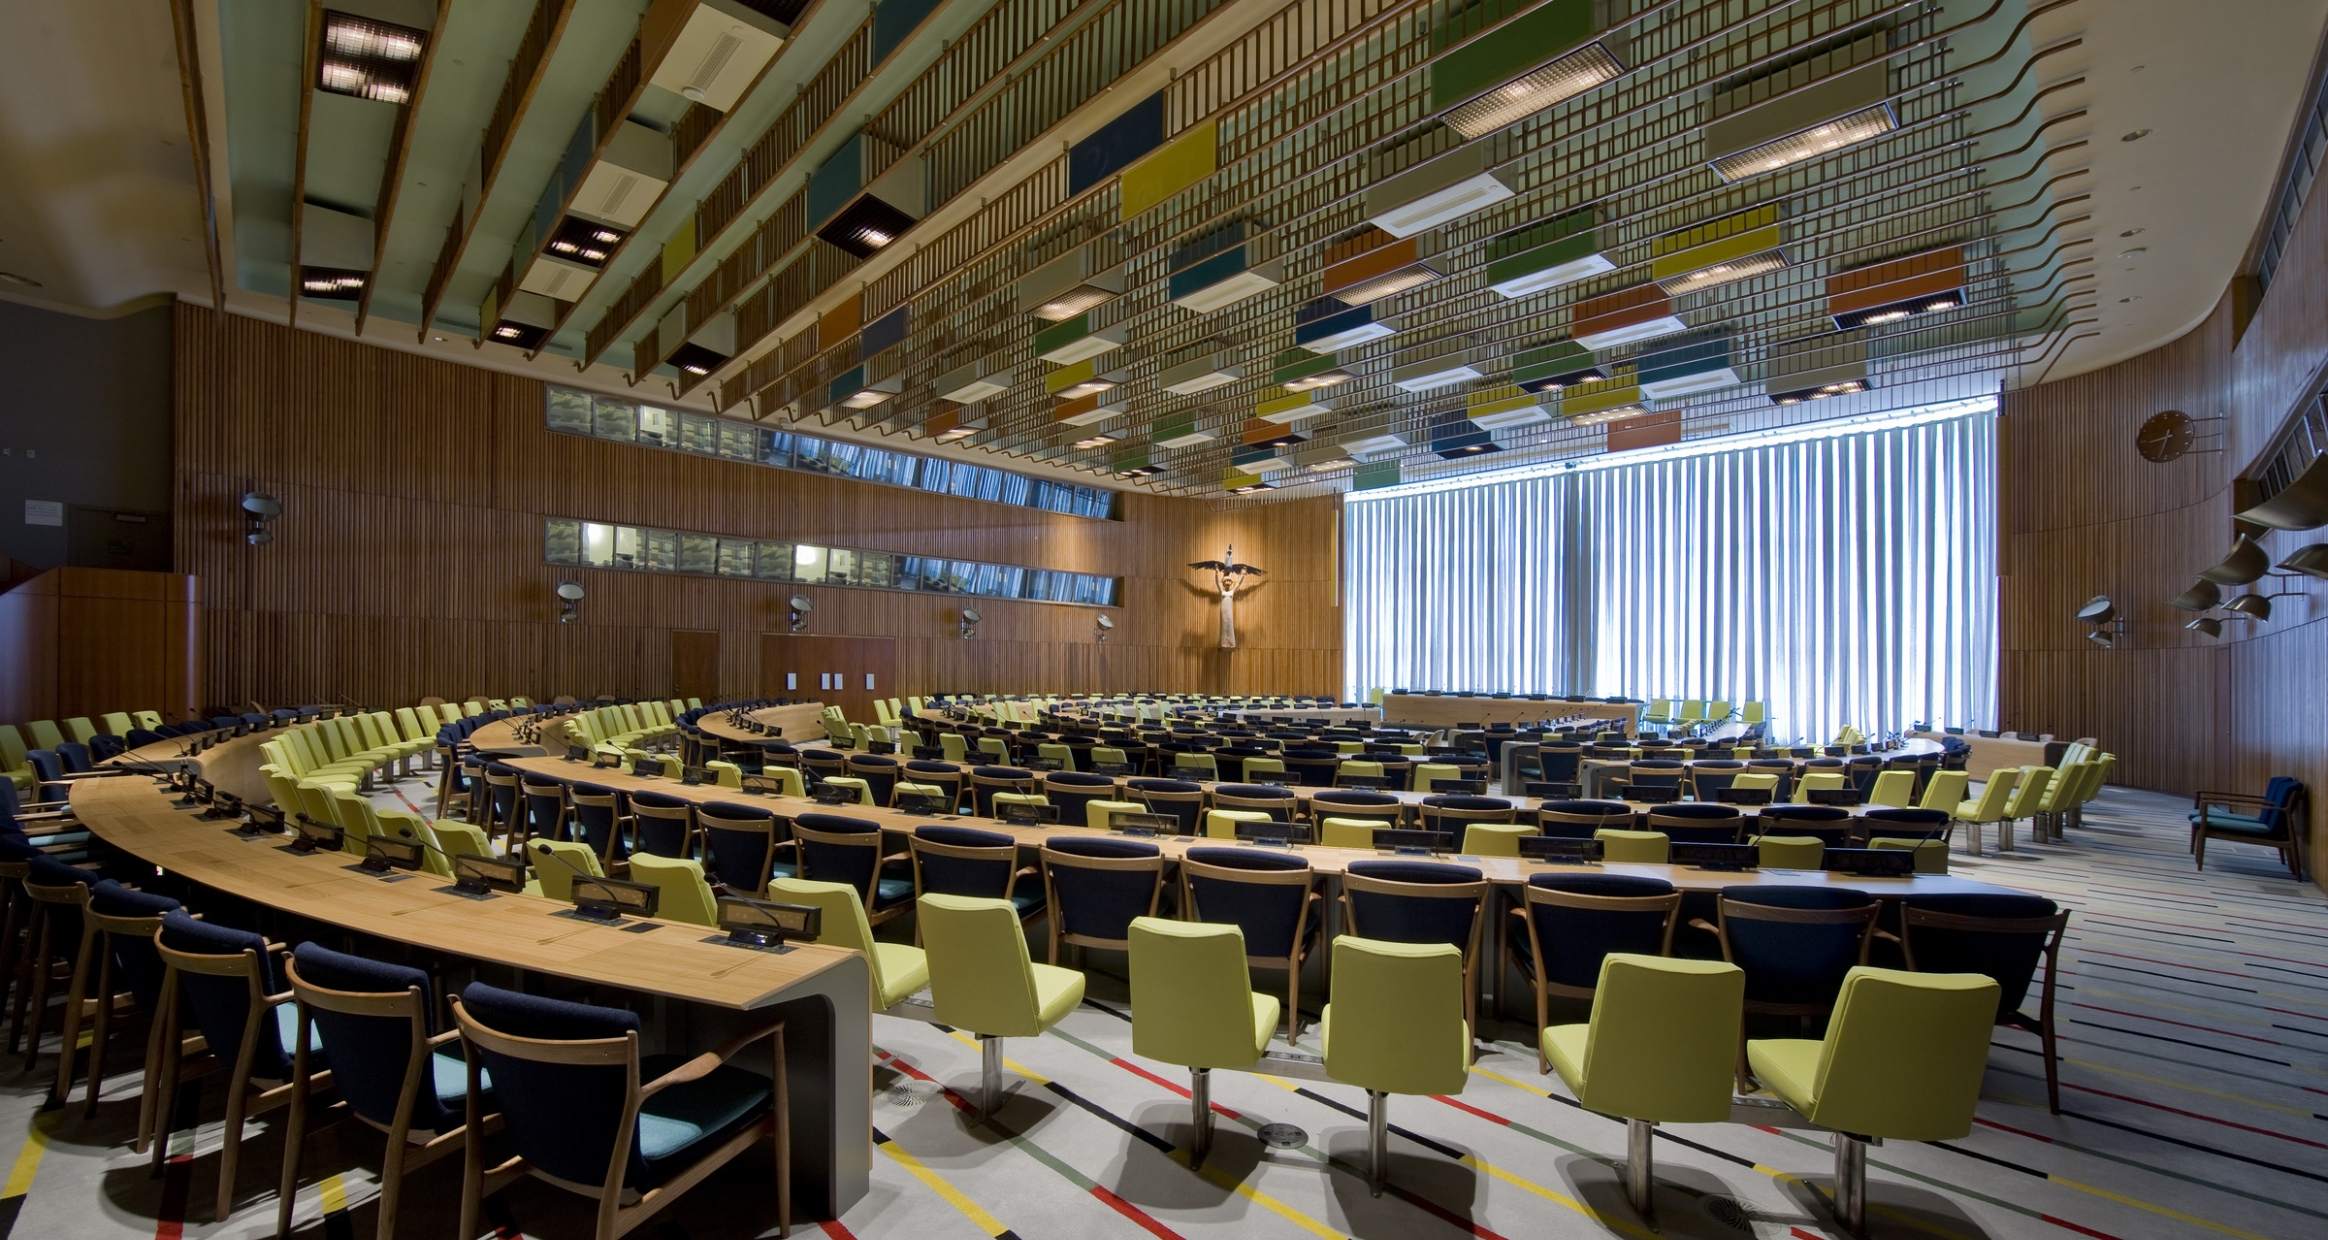 Interior view of the Trusteeship Council Chamber at the UN